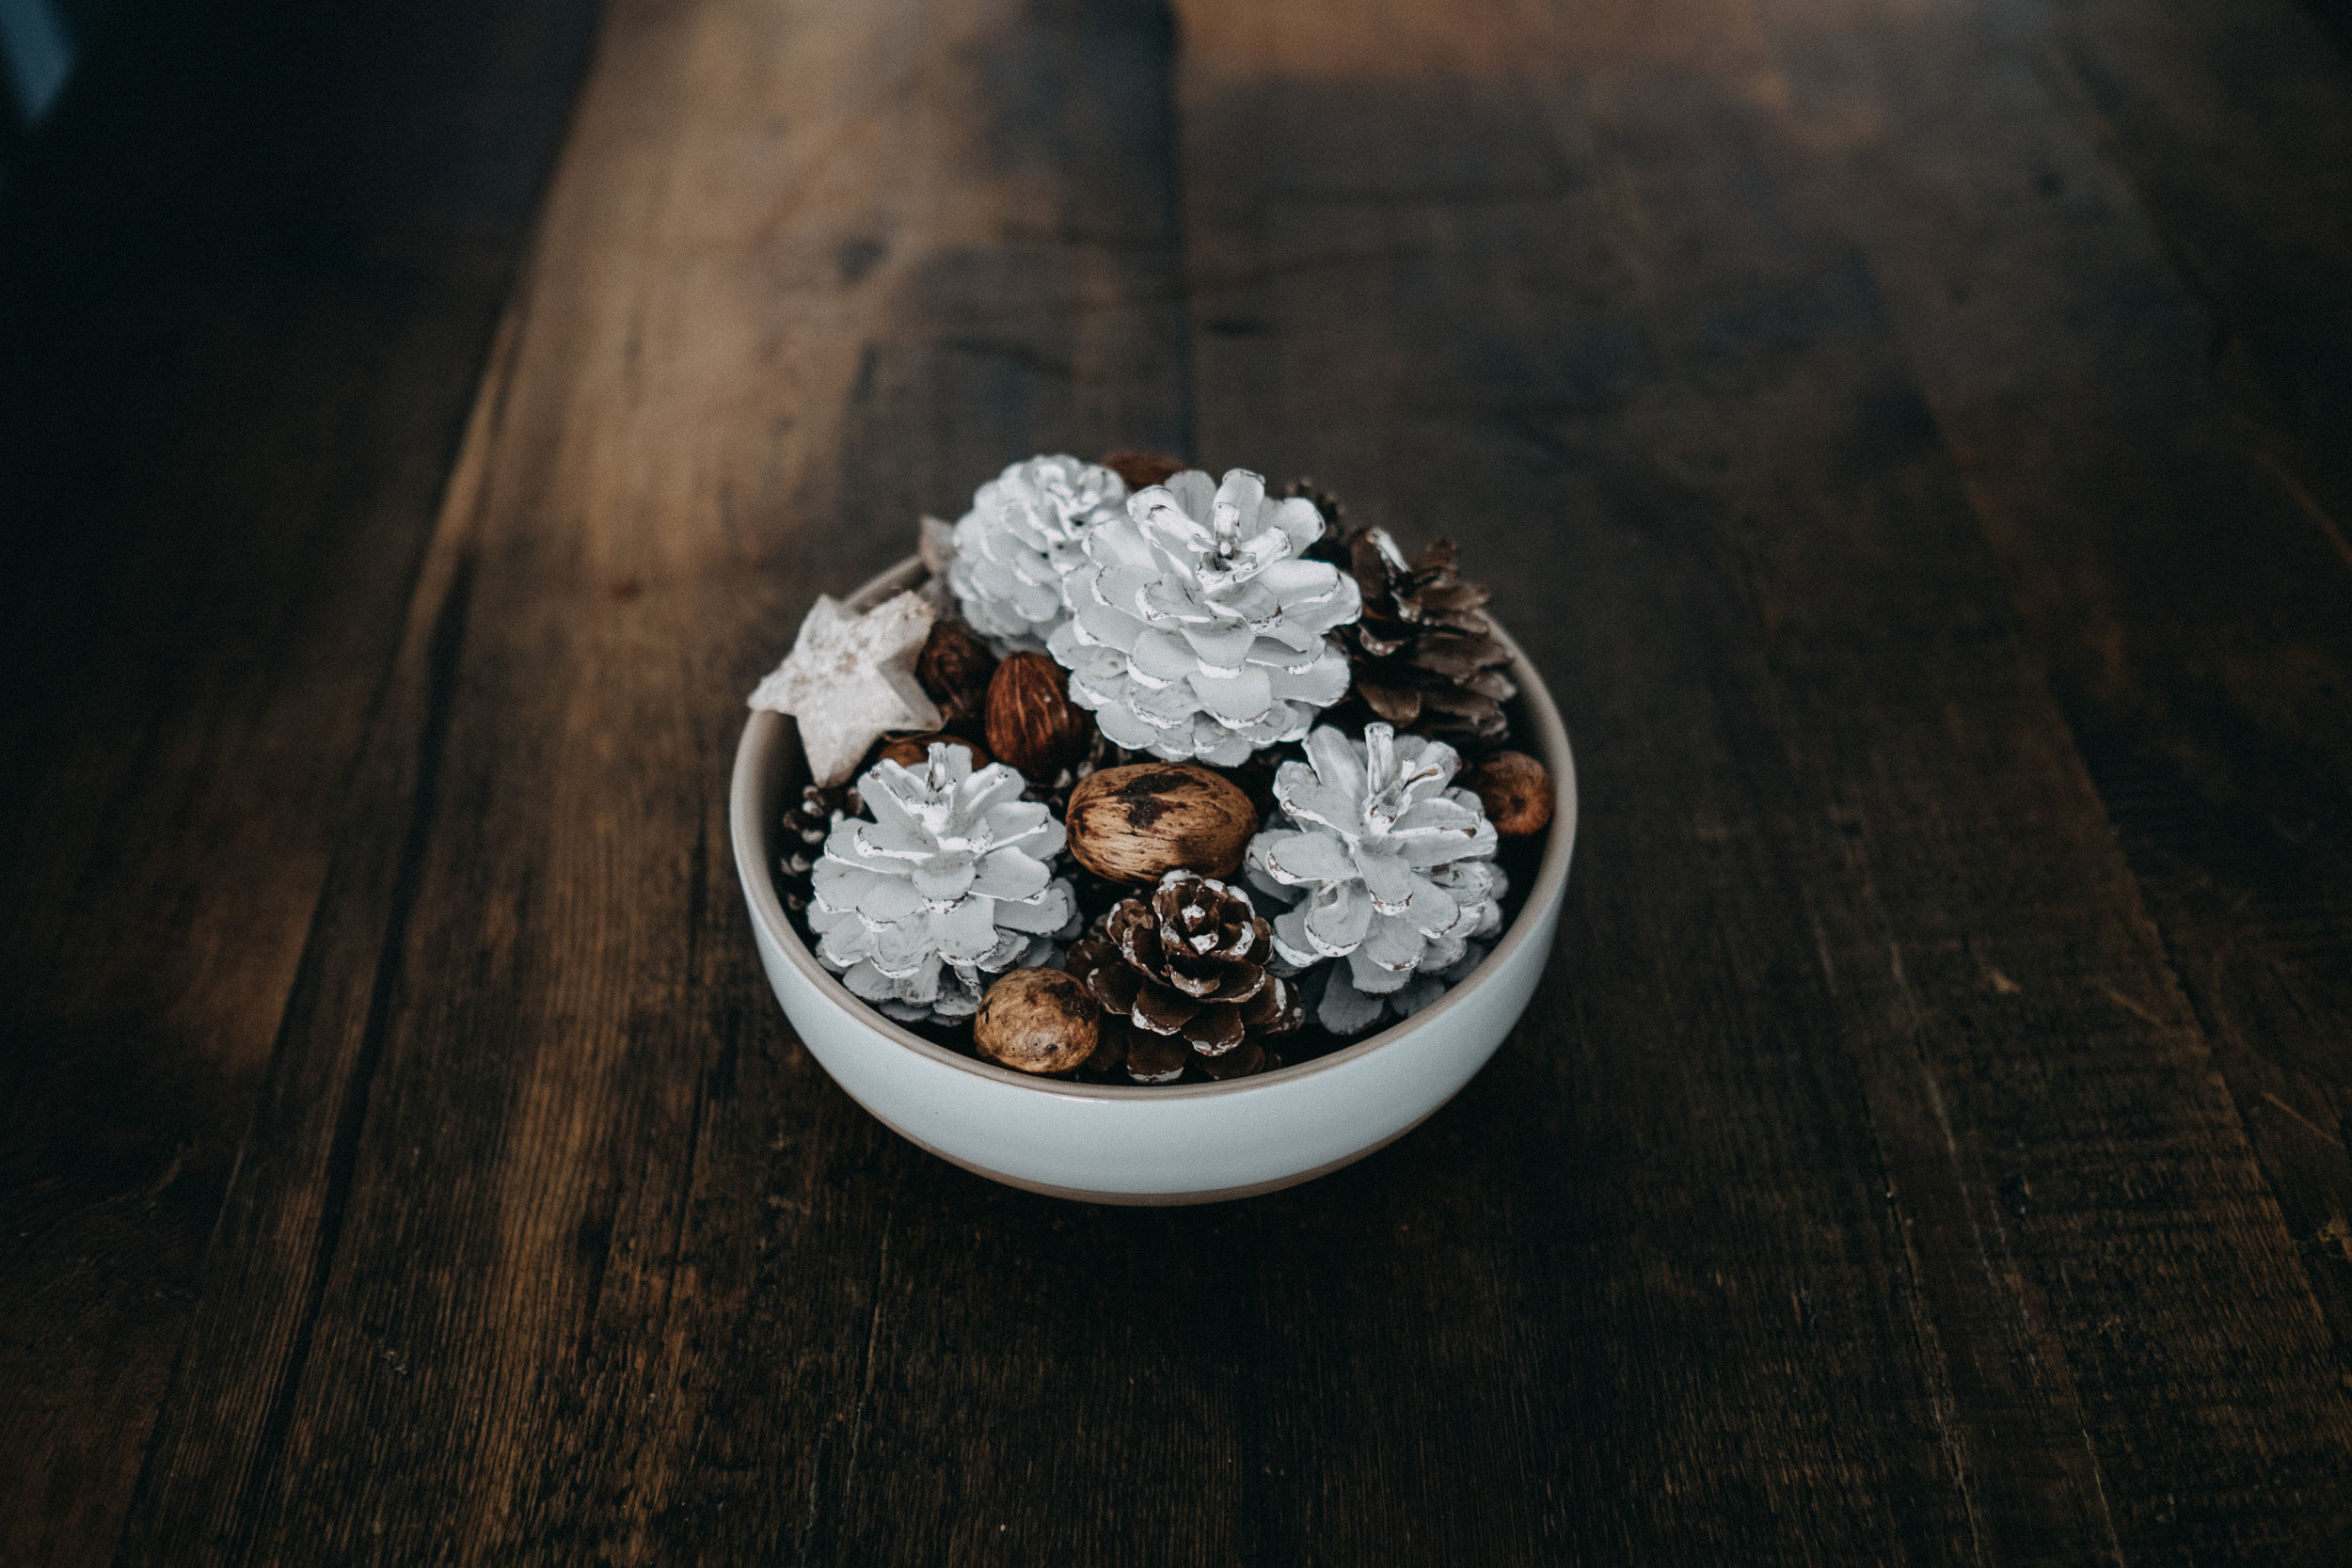 Rustic table with a white bowl filled with pinecones